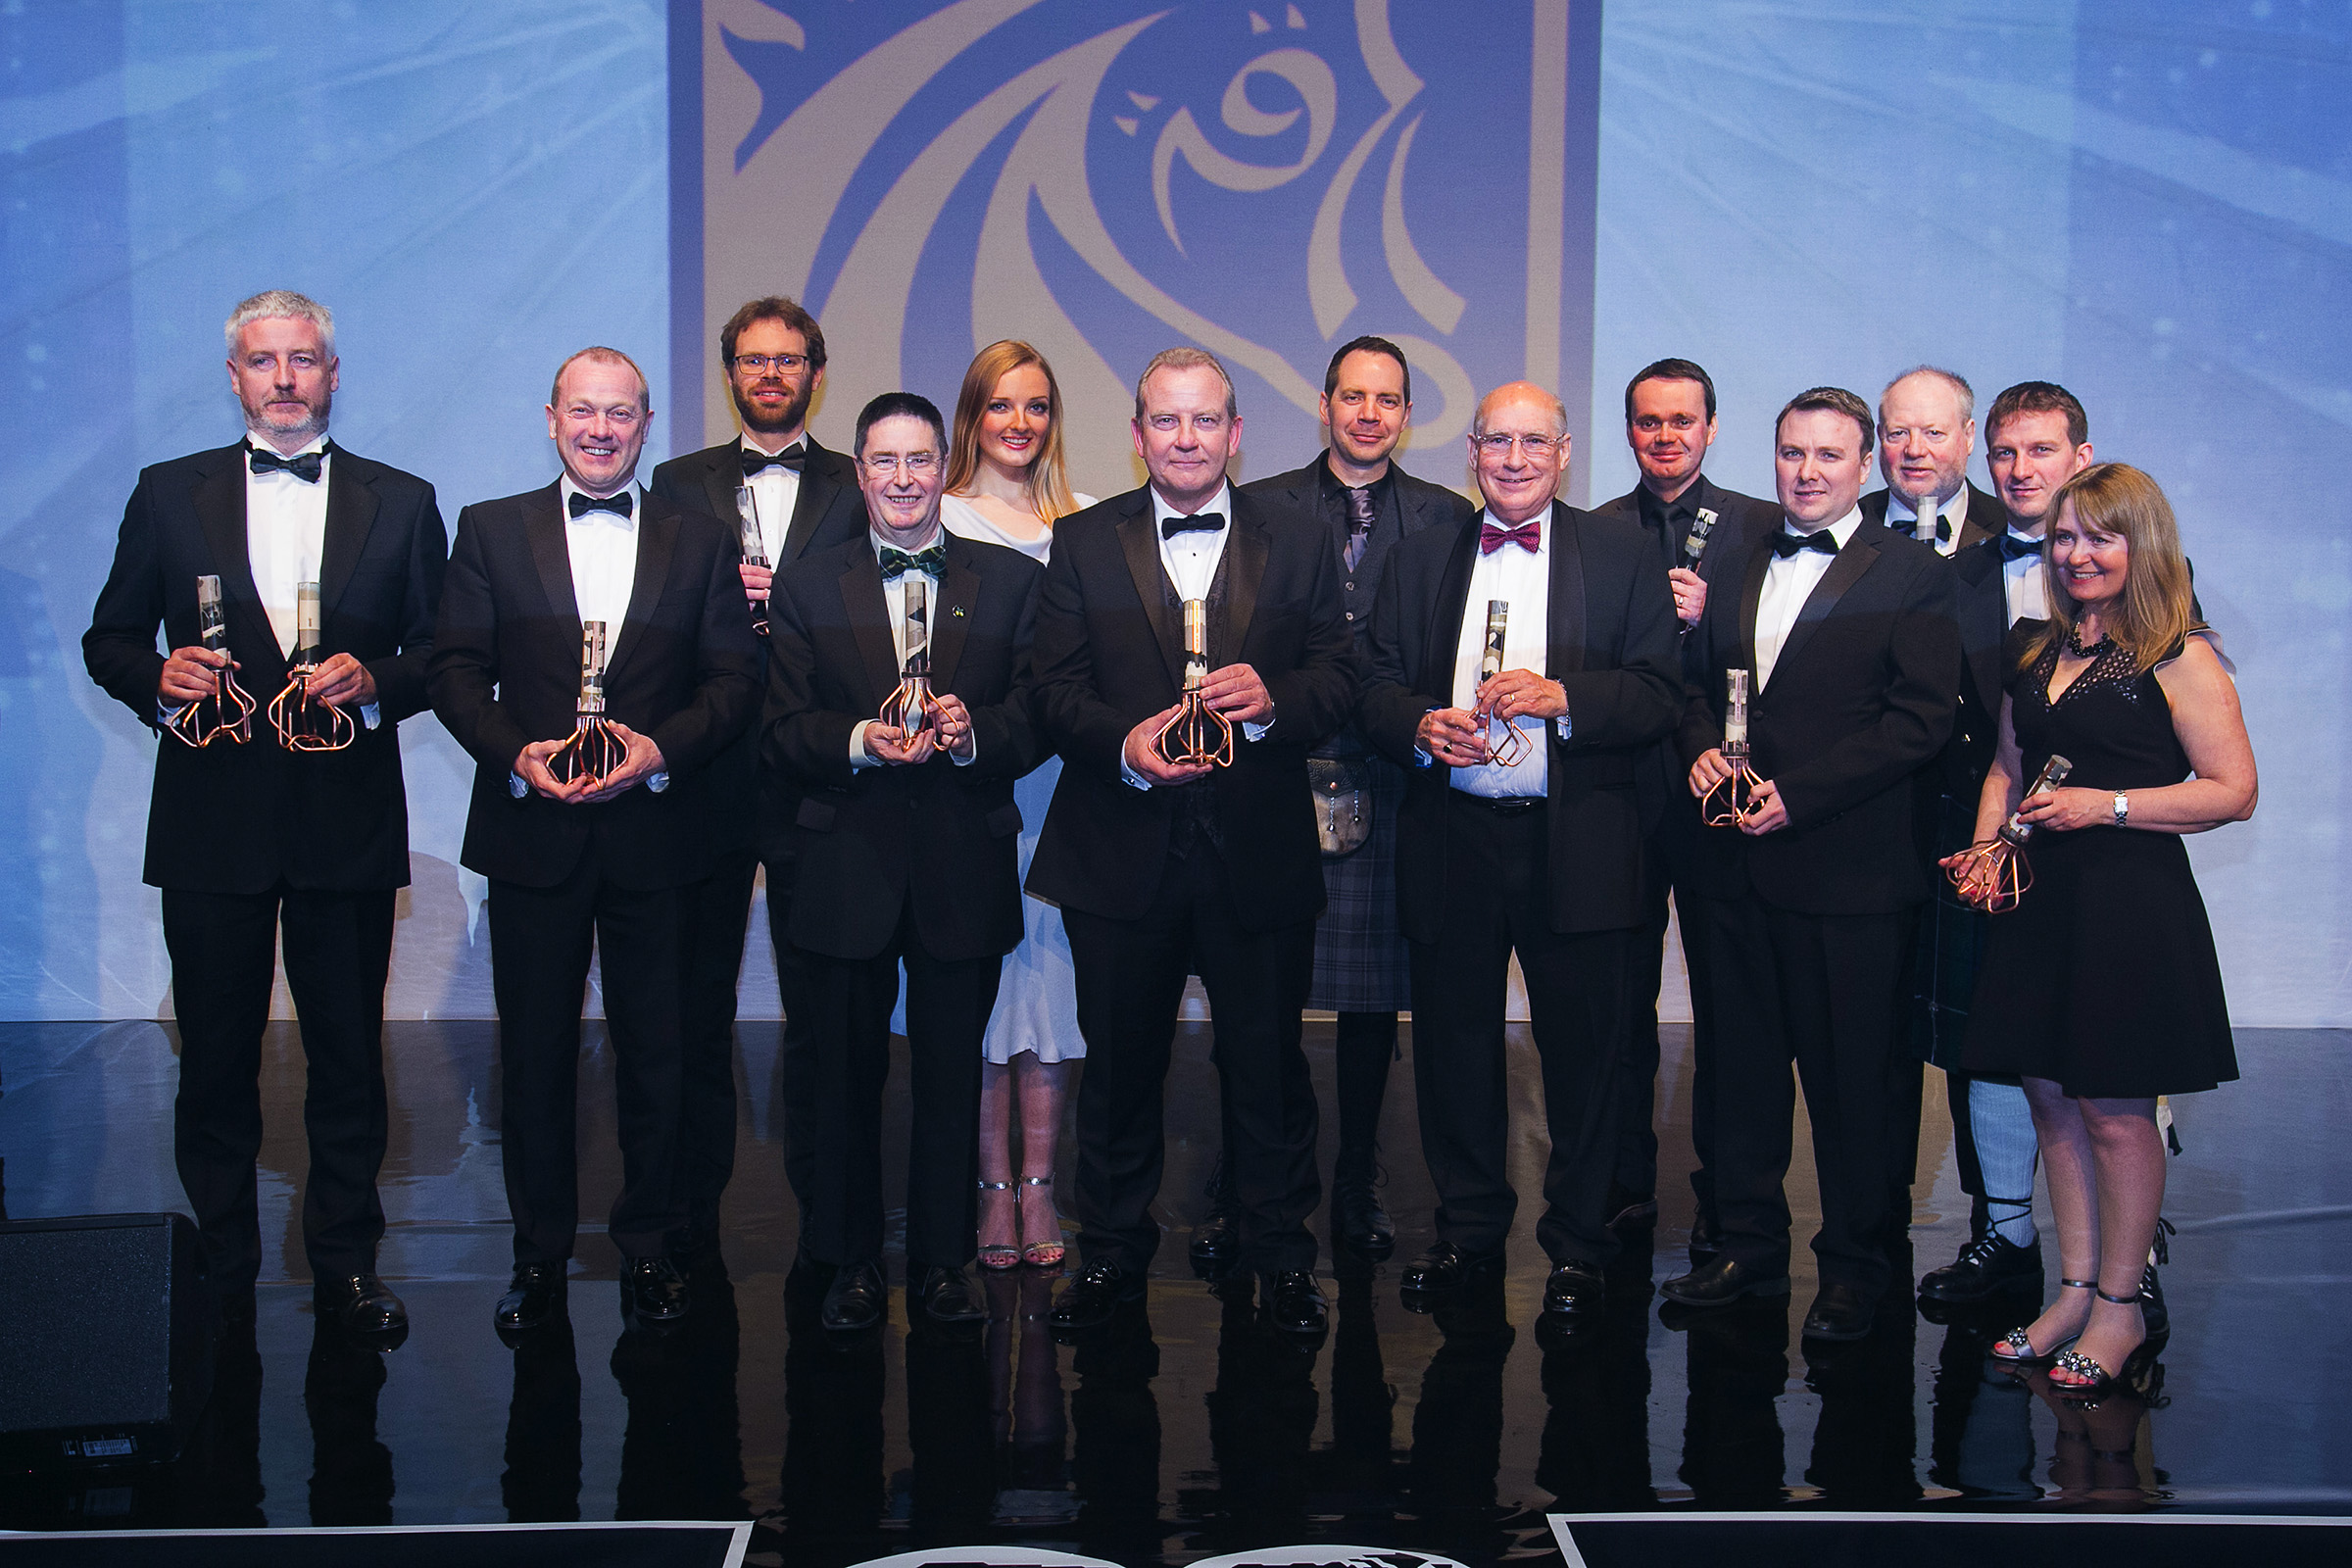 Winners at last year's OAA ceremony